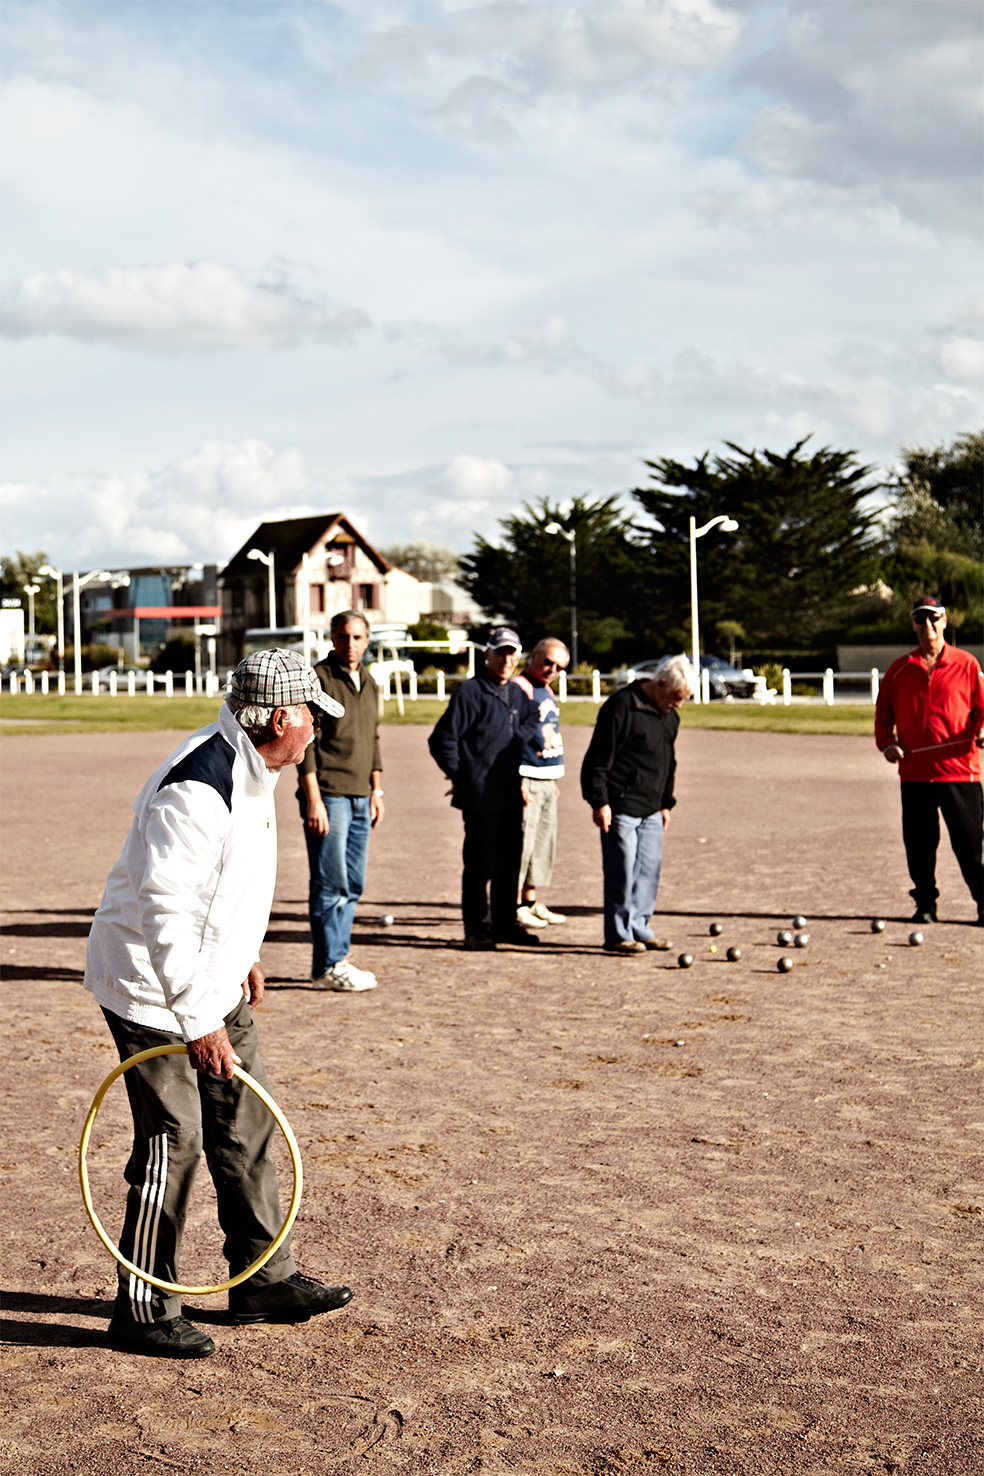 Petonc_Bocce_Normandy_France_Men-playing-bocce